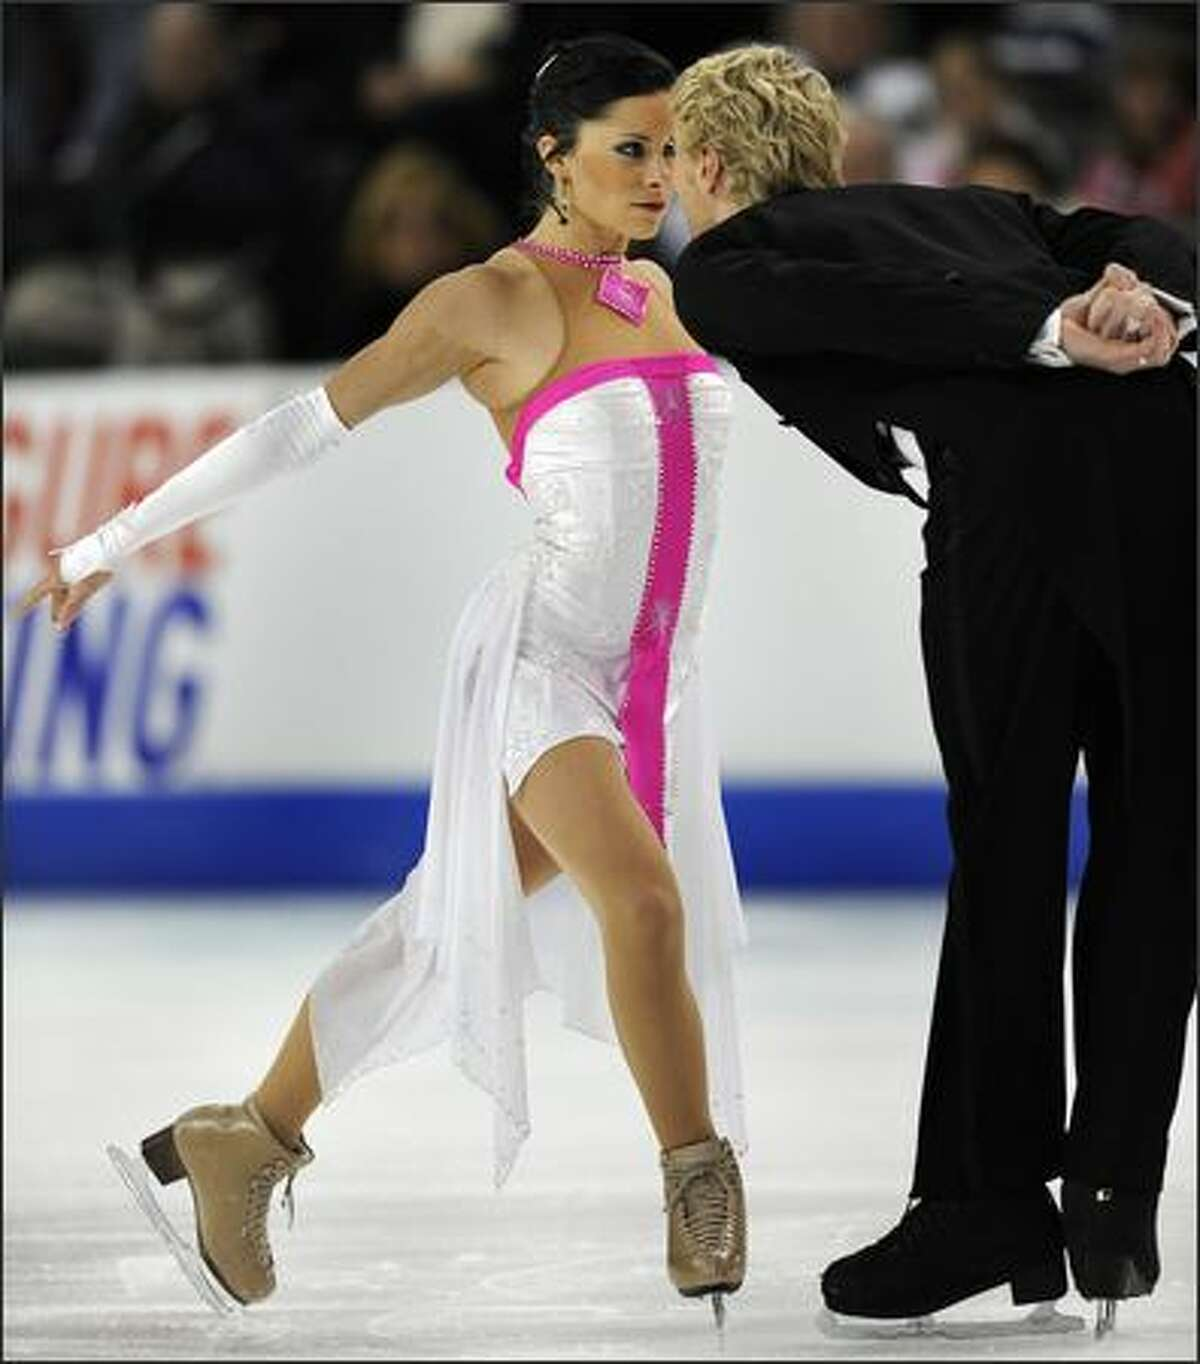 Isabelle Delobel and Olivier Schoenfelder of France in the Ice Dance Compulsory Dance Competition during the 2008 Skate America at the Comcast Arena in Everett on Friday. Skate America, the first Grand Prix event of the season, will run through Sunday.